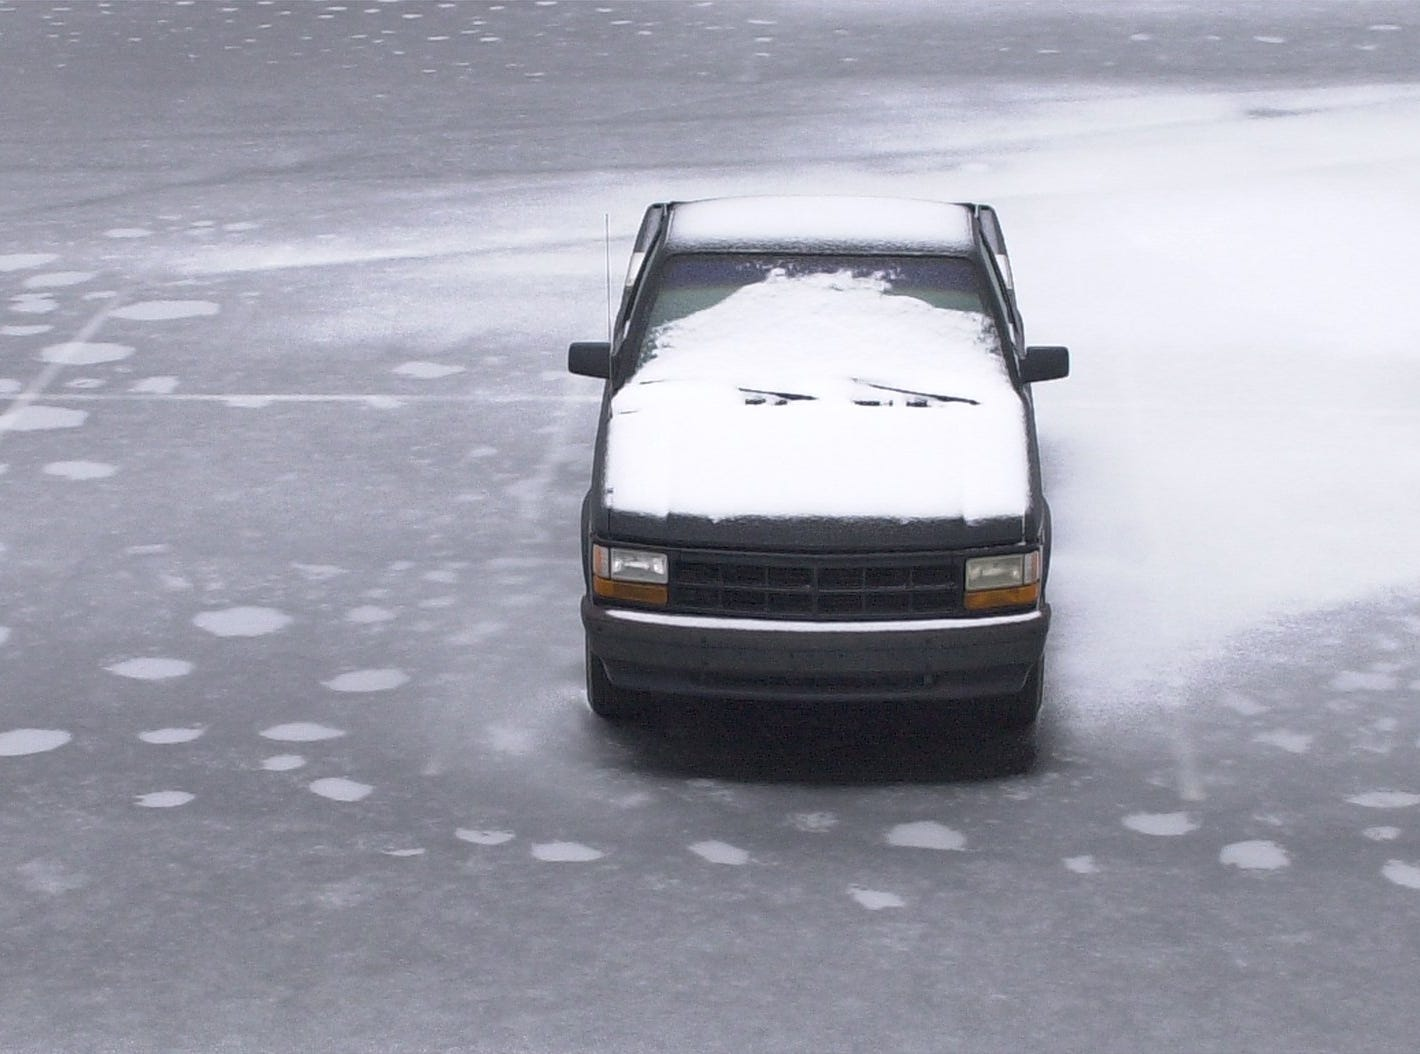 A snow and ice encrusted pickup parked by itself on the ice covered parking lot at County Square in Greenville January 29, 2005.